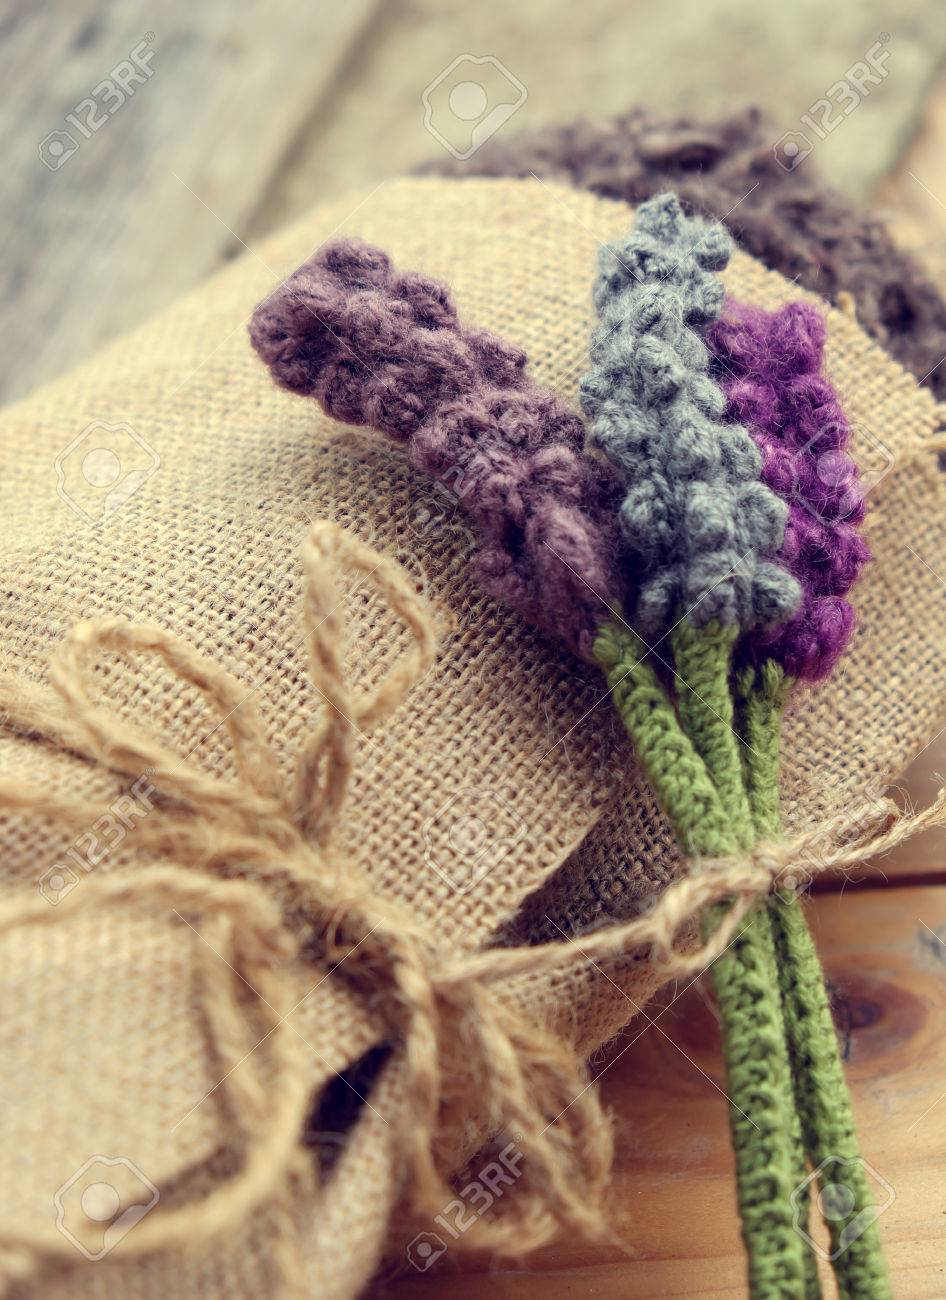 Handmade Gift For Mother Day Or Valentine Day, Knitted Lavender ...